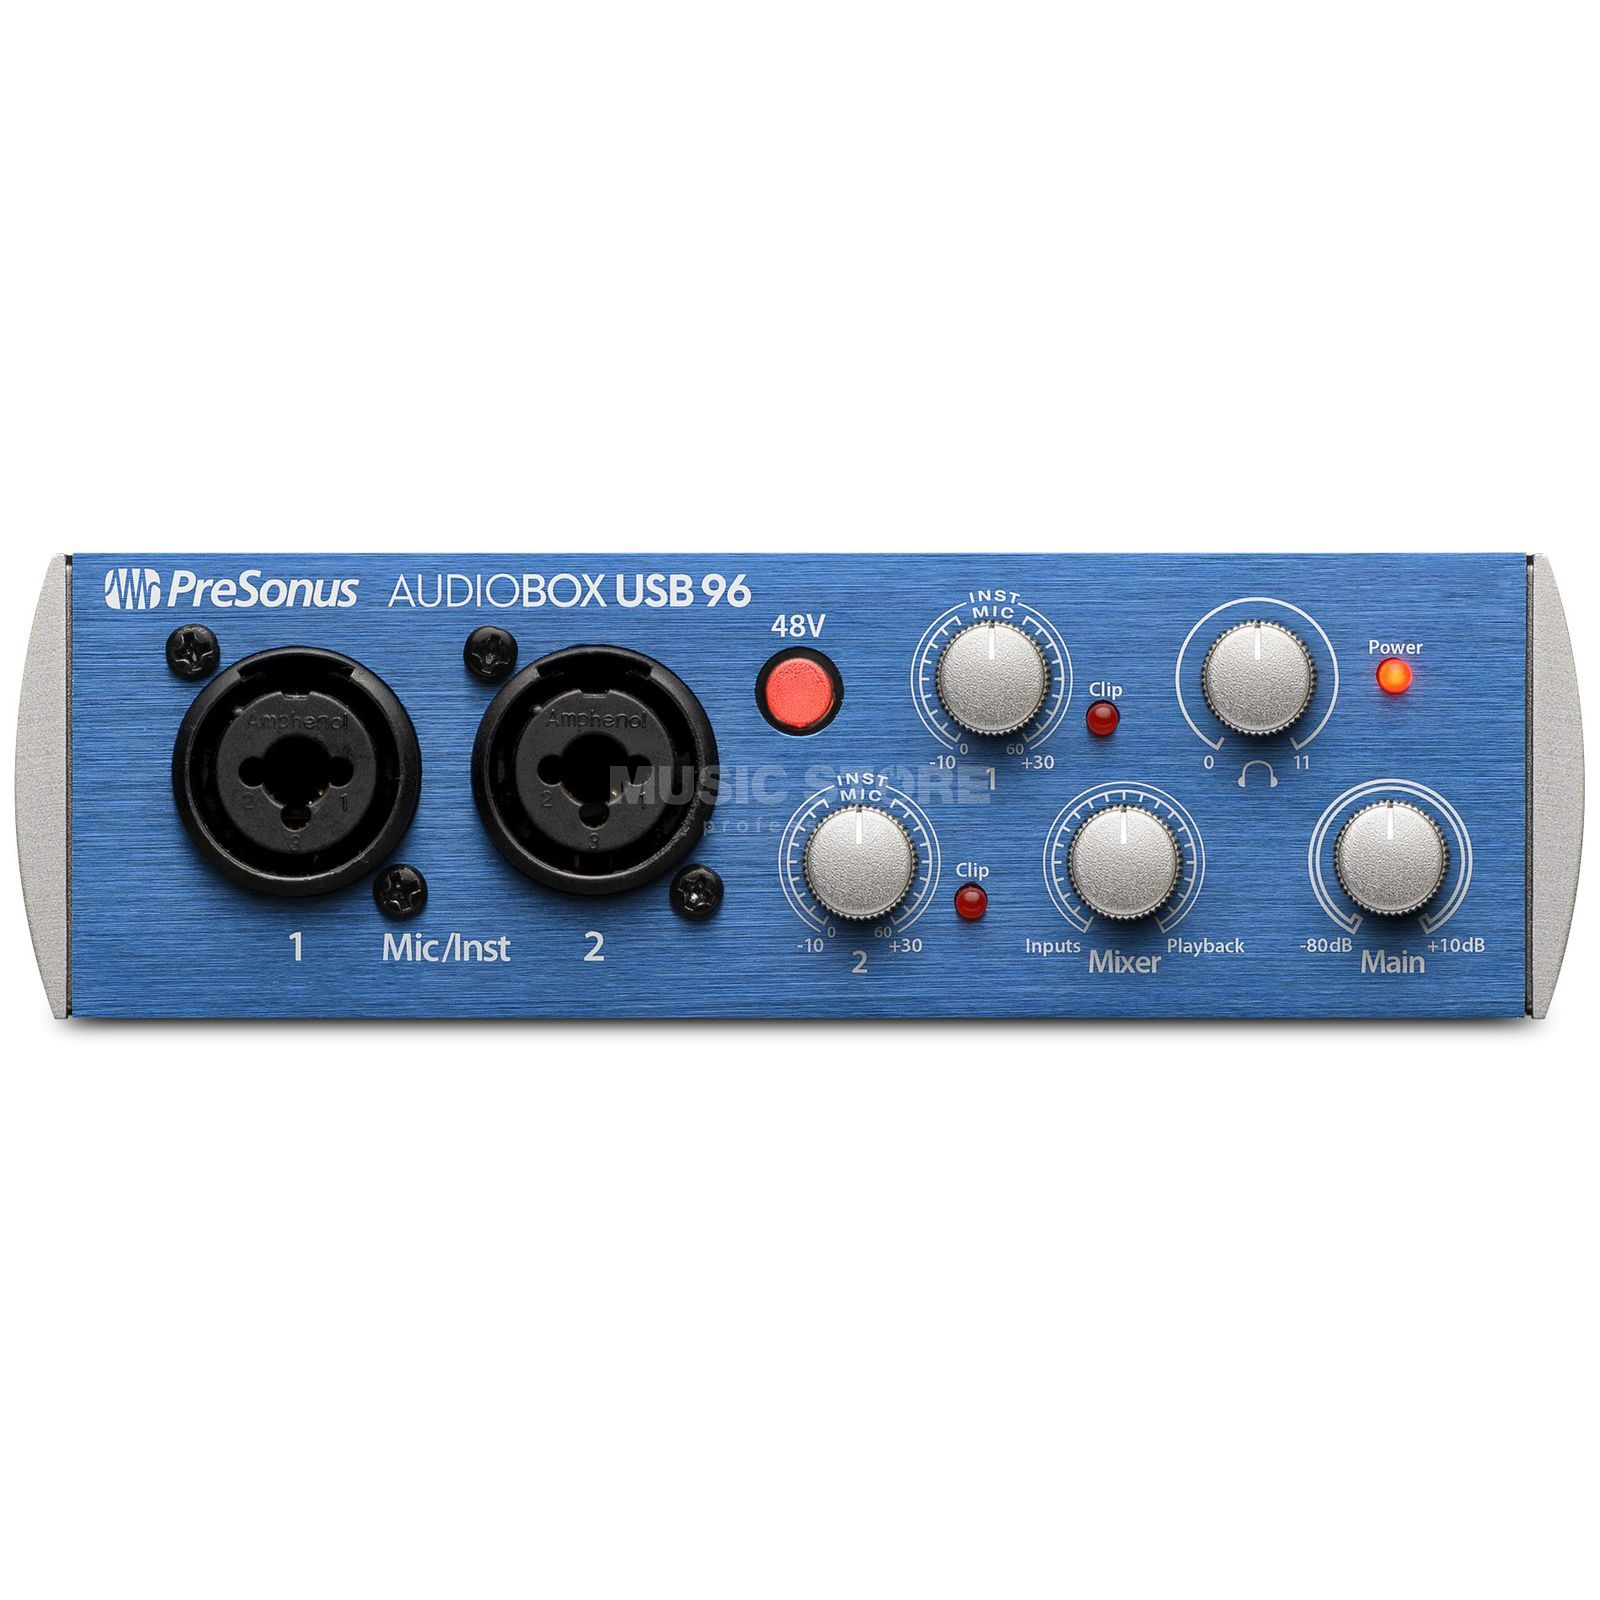 Presonus AudioBox USB 96 Product Image